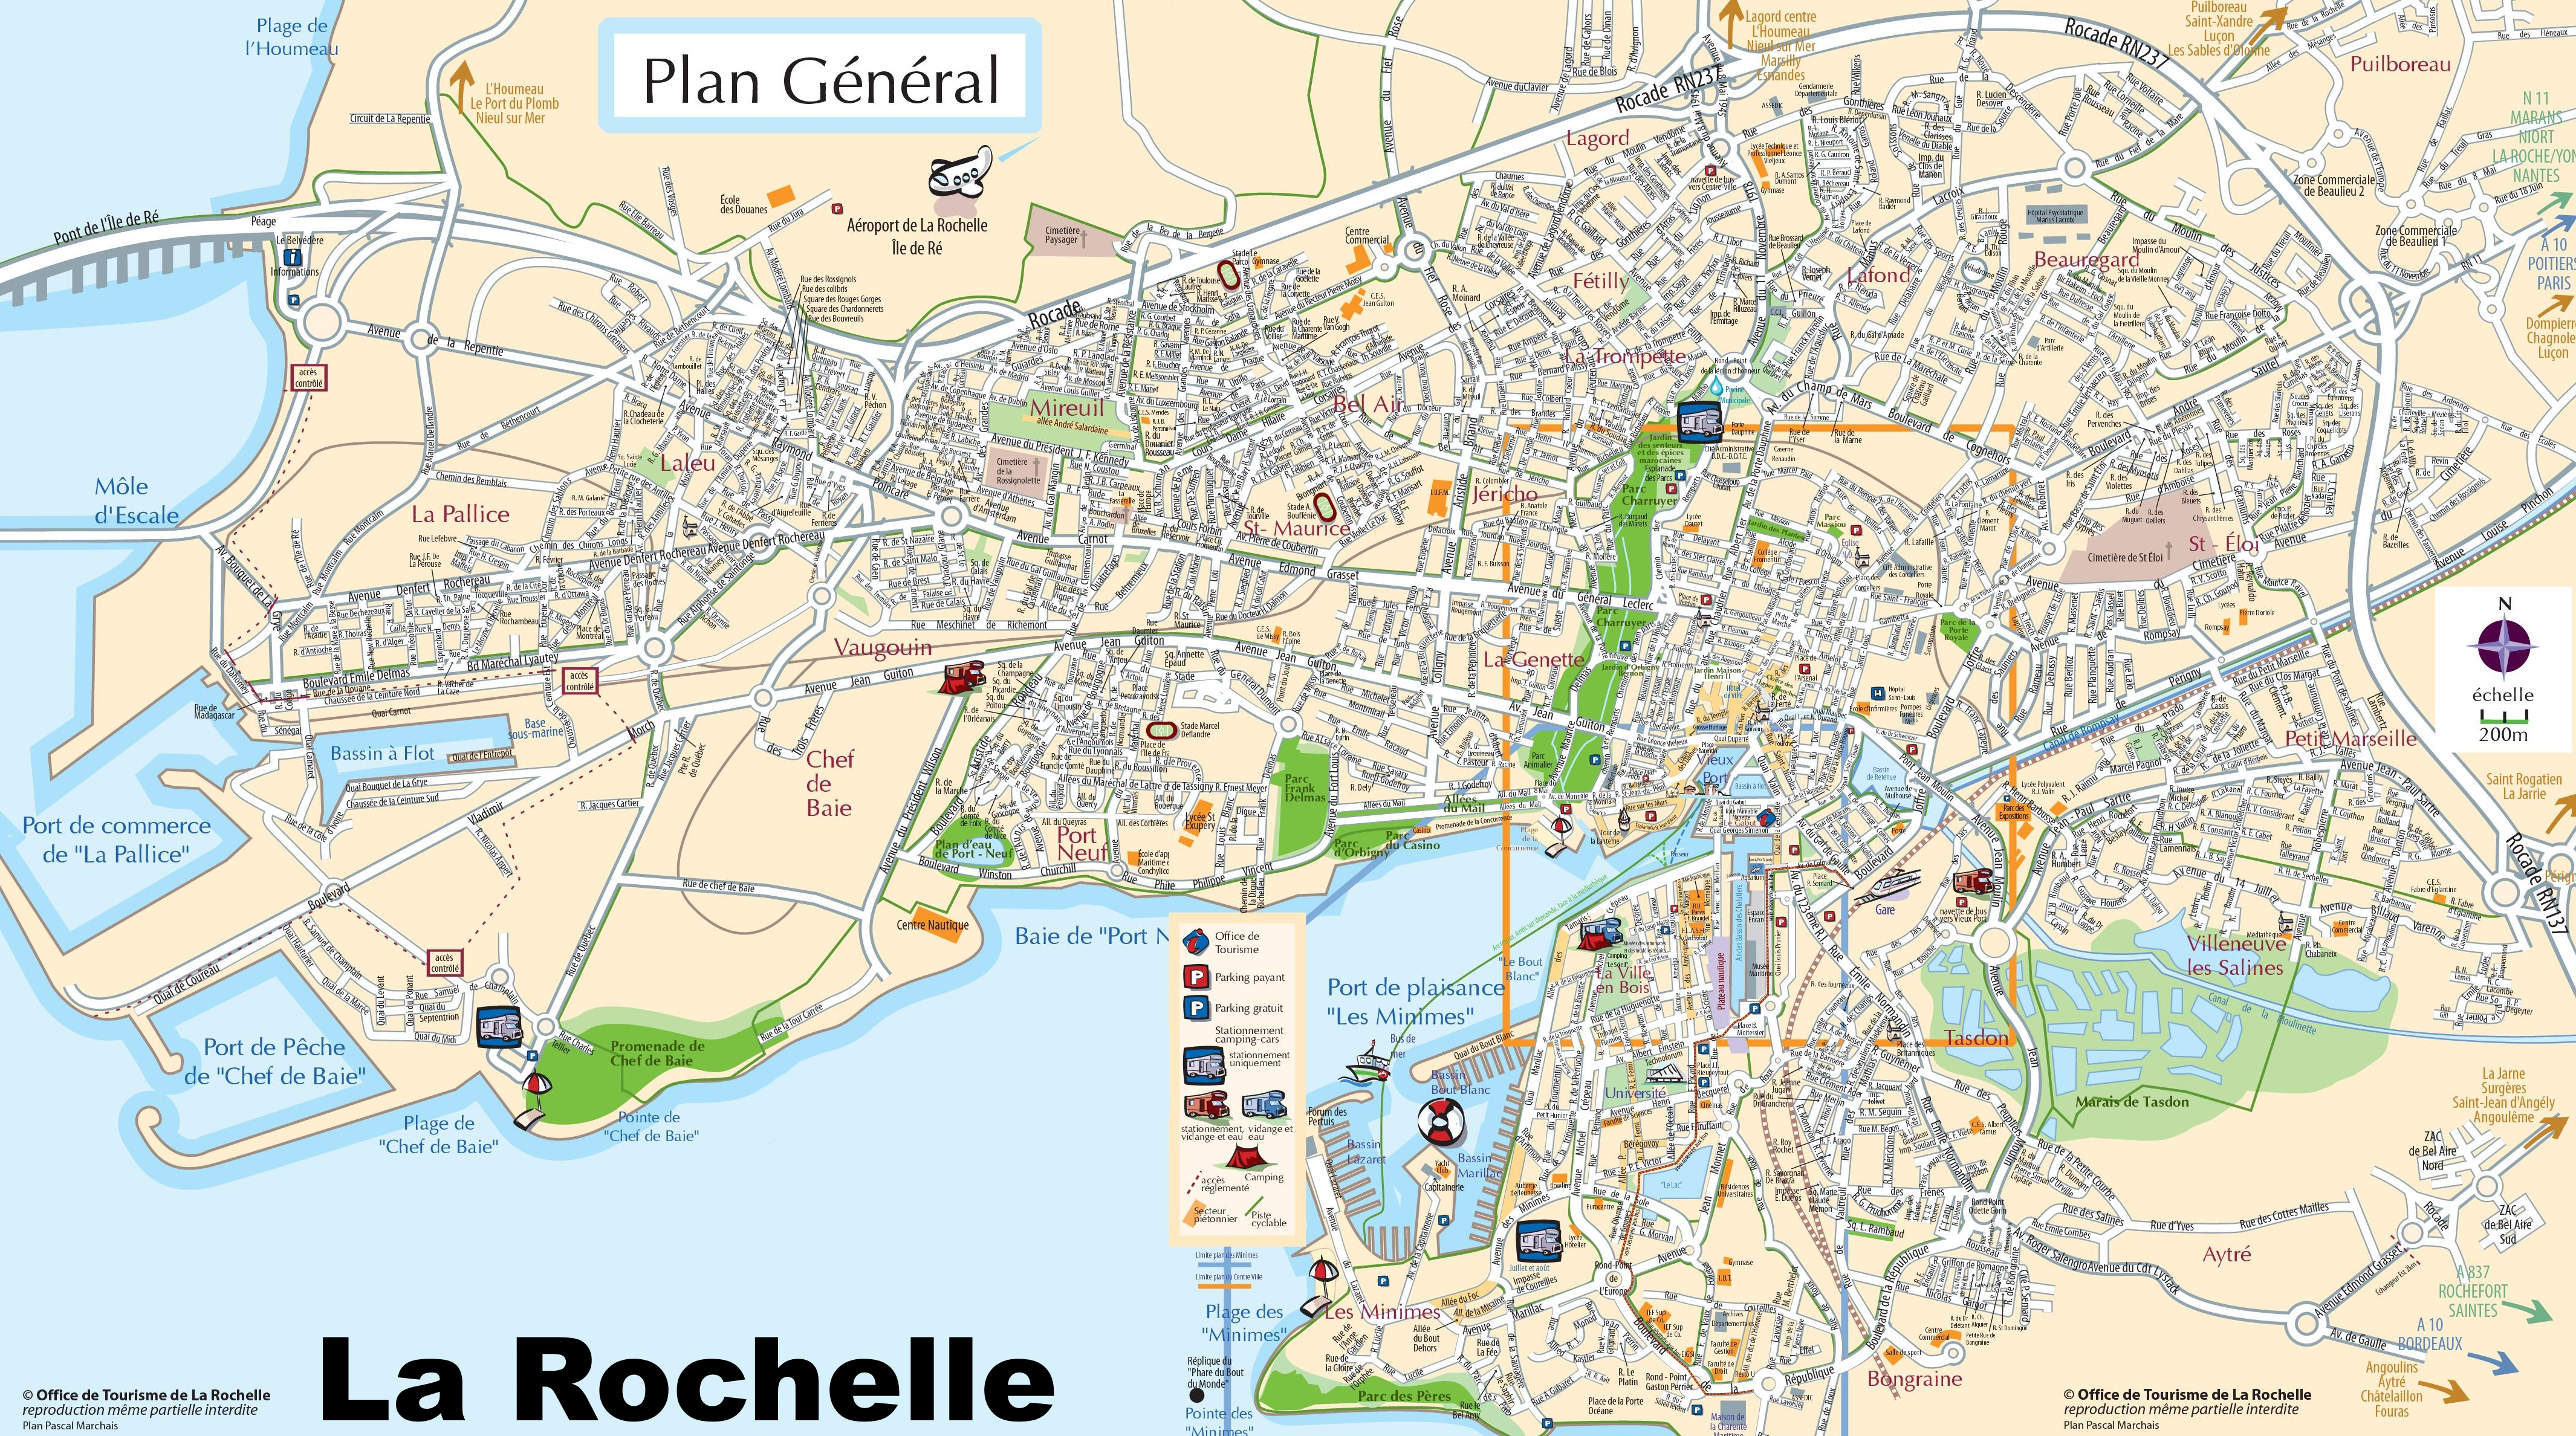 La Rochelle France Map La Rochelle tourist map La Rochelle France Map